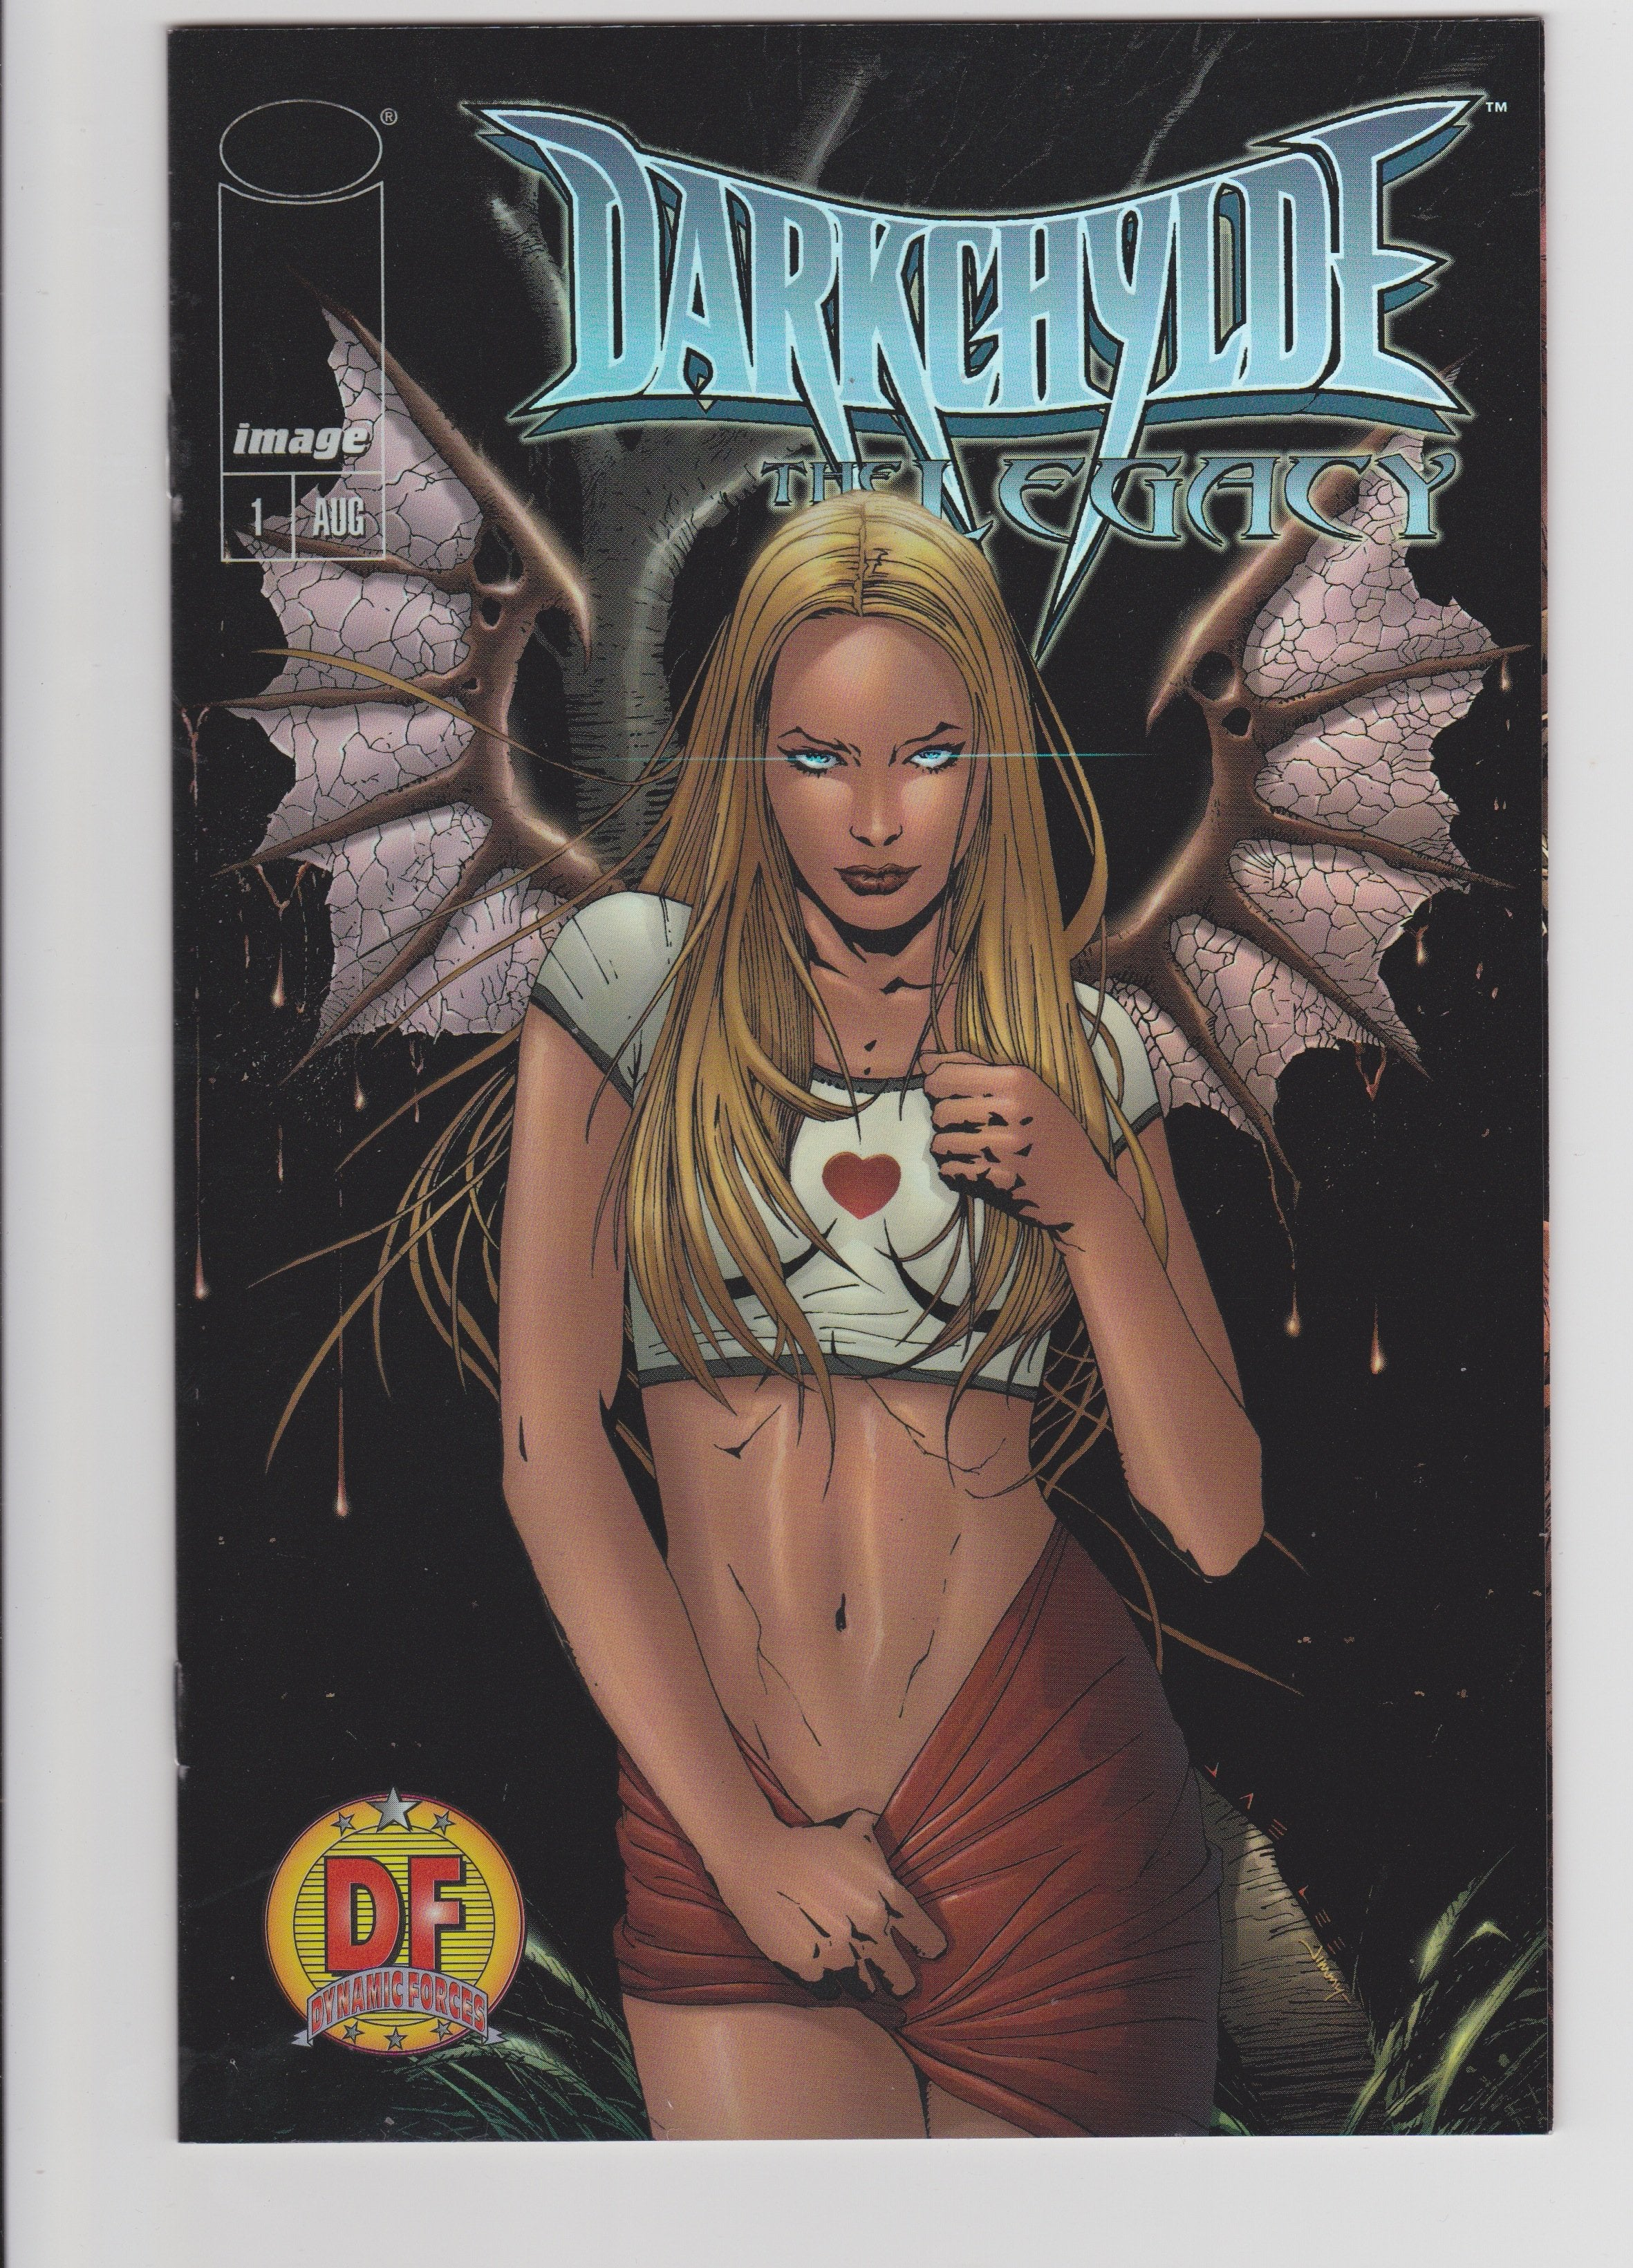 DARKCHYLDE THE LEGACY #1 FOIL VARIANT